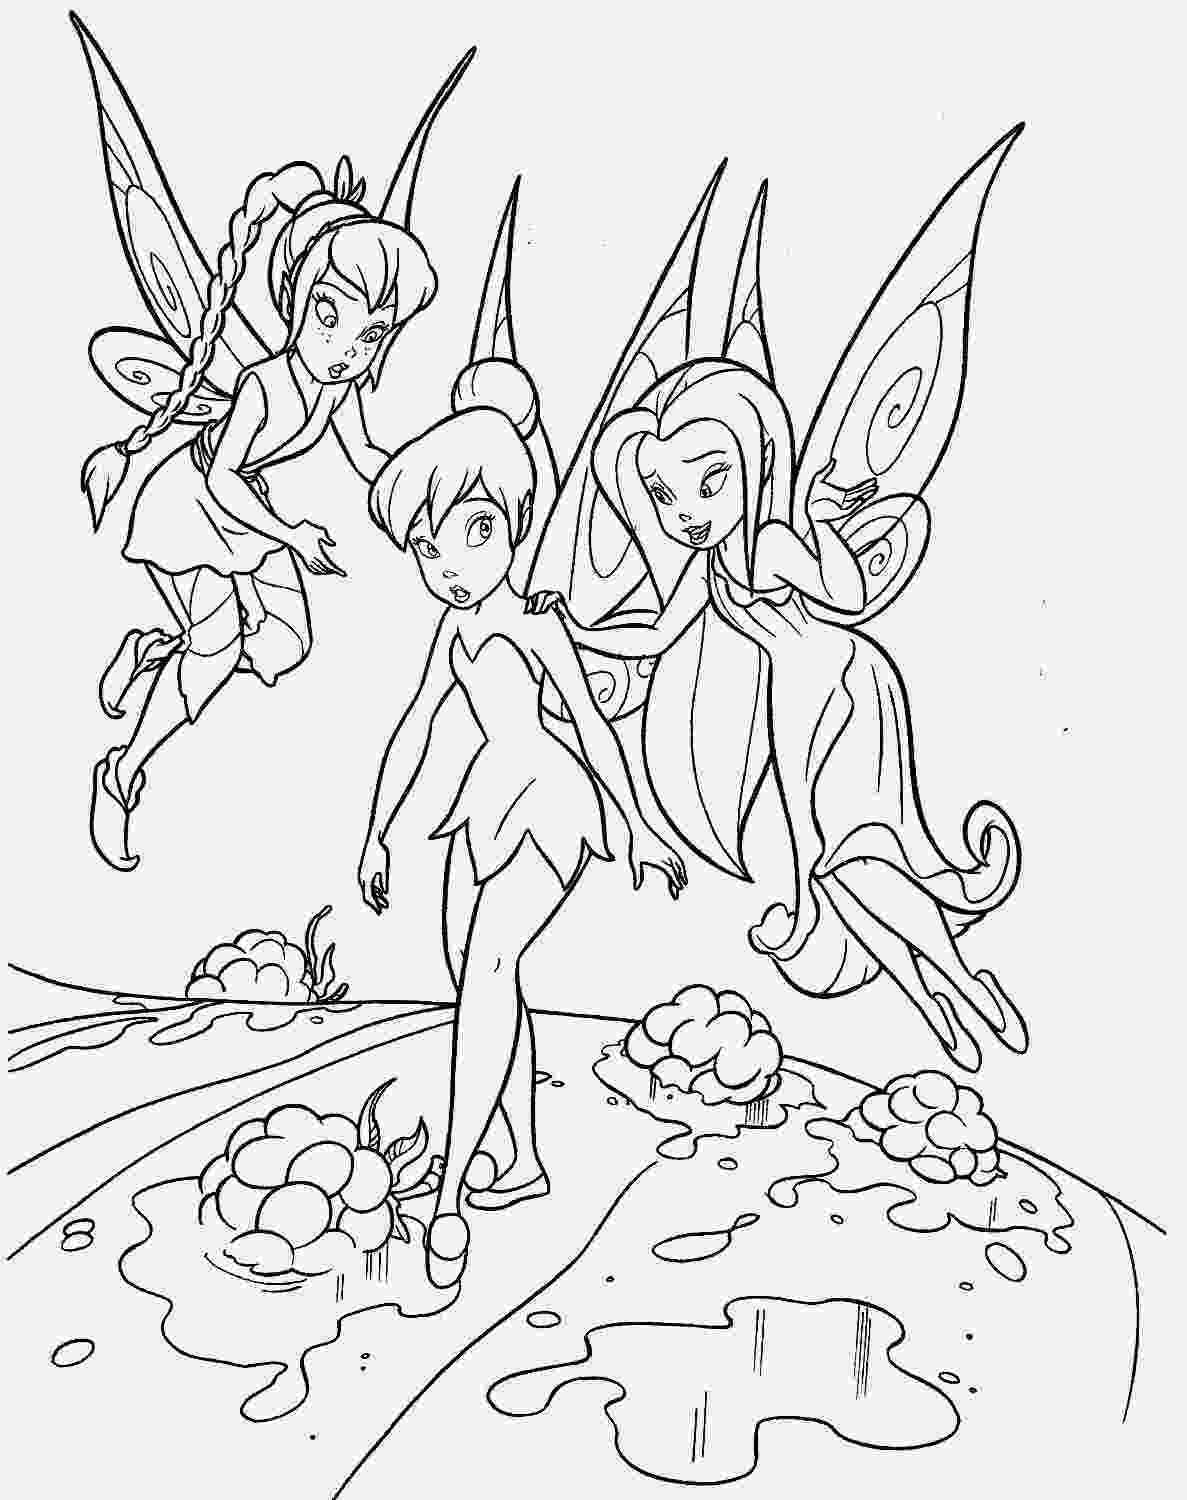 tinker bell coloring pages tinkerbell coloring pages tinkerbell coloring pages bell coloring pages tinker